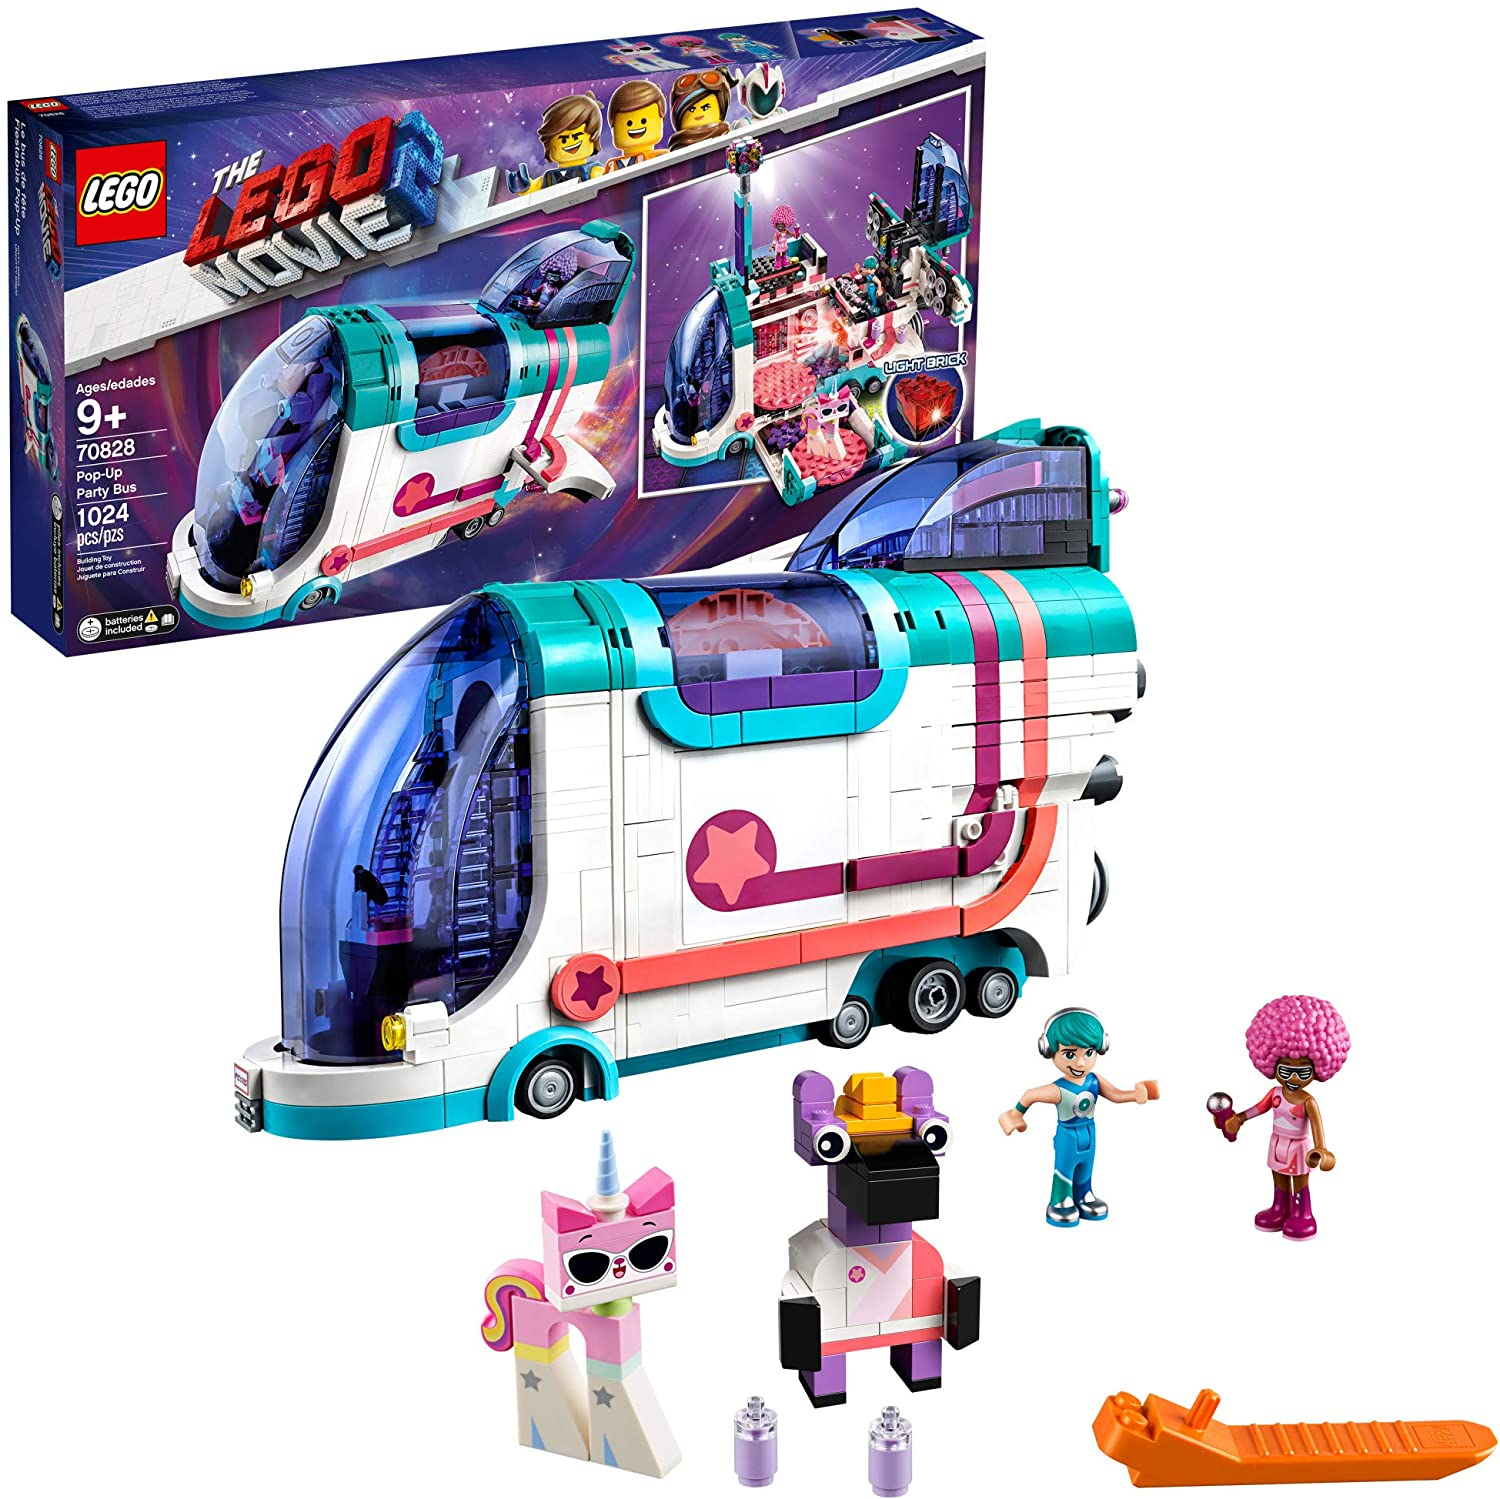 LEGO THE LEGO MOVIE 2 Pop Up Party Bus 70828 Building Kit, Build Your Own Toy Party Bus for 9+ Year Old Girls and Boys (1013 Pieces)